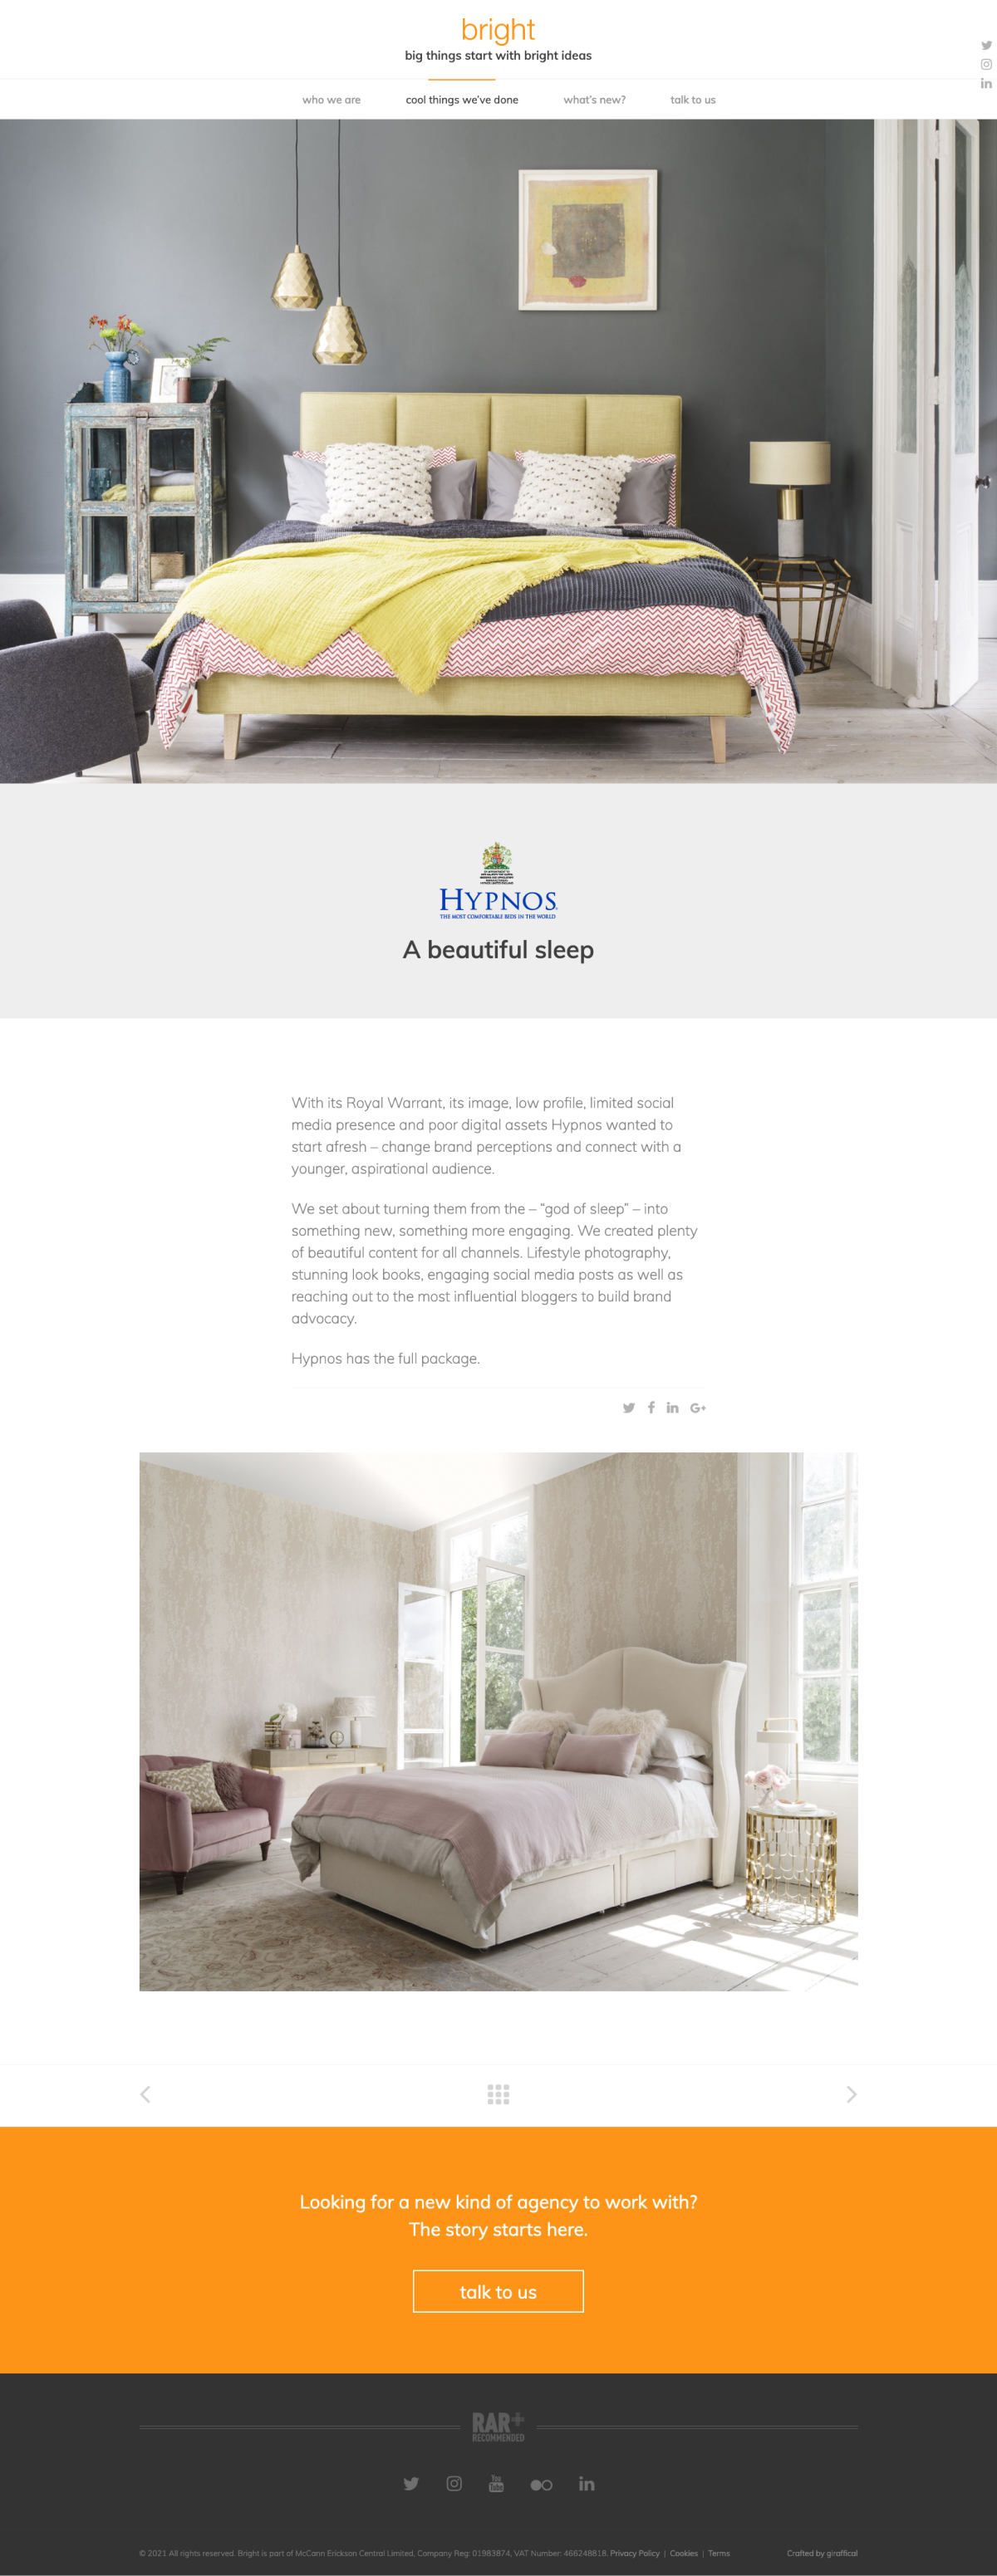 PR Marketing Agency Website - Bright - Project Page